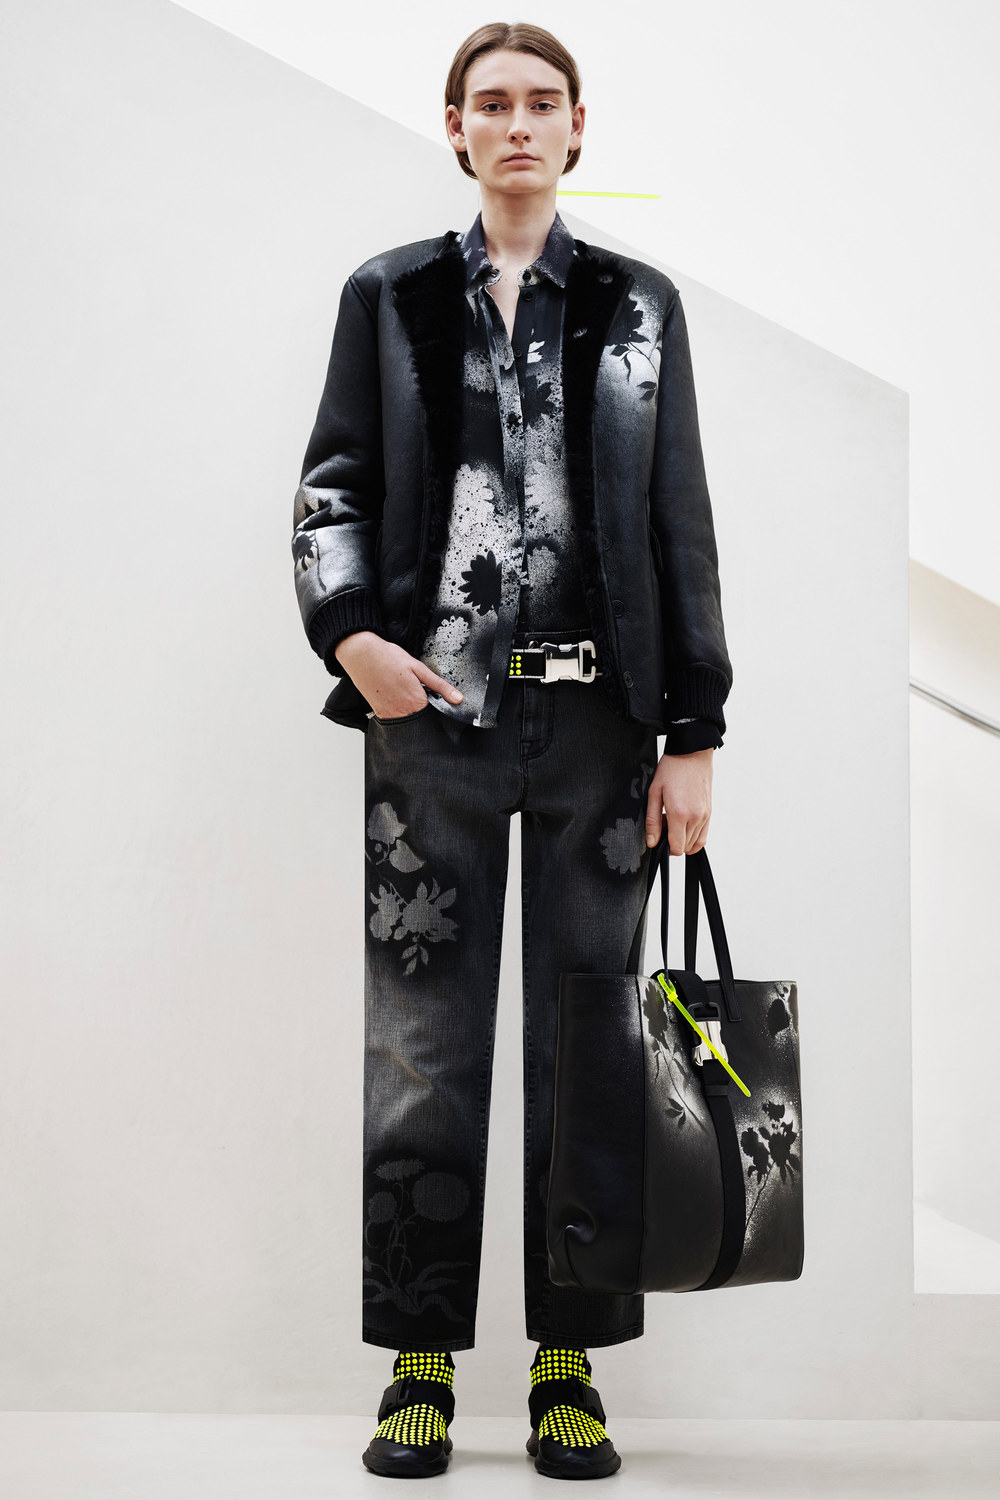 christopher-kane-pre-fall-2016-lookbook-18.jpg